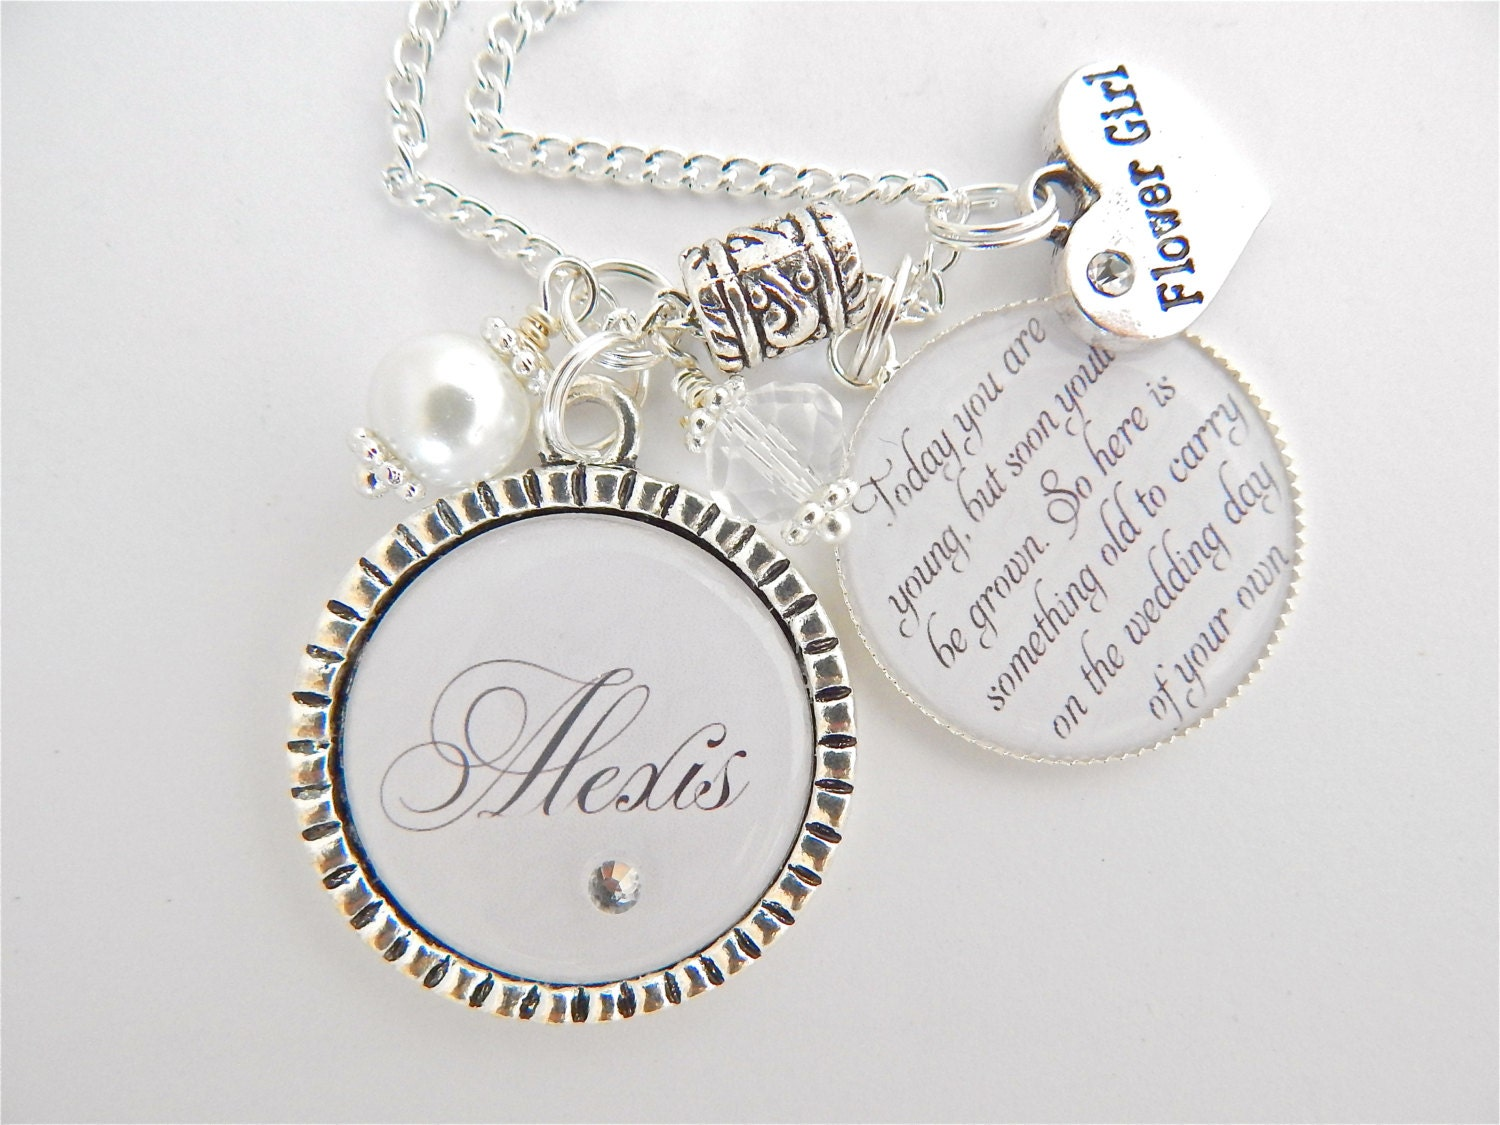 Childrens Wedding Gifts: FLOWER GIRL GIFT Children's Wedding Jewelry Personalized